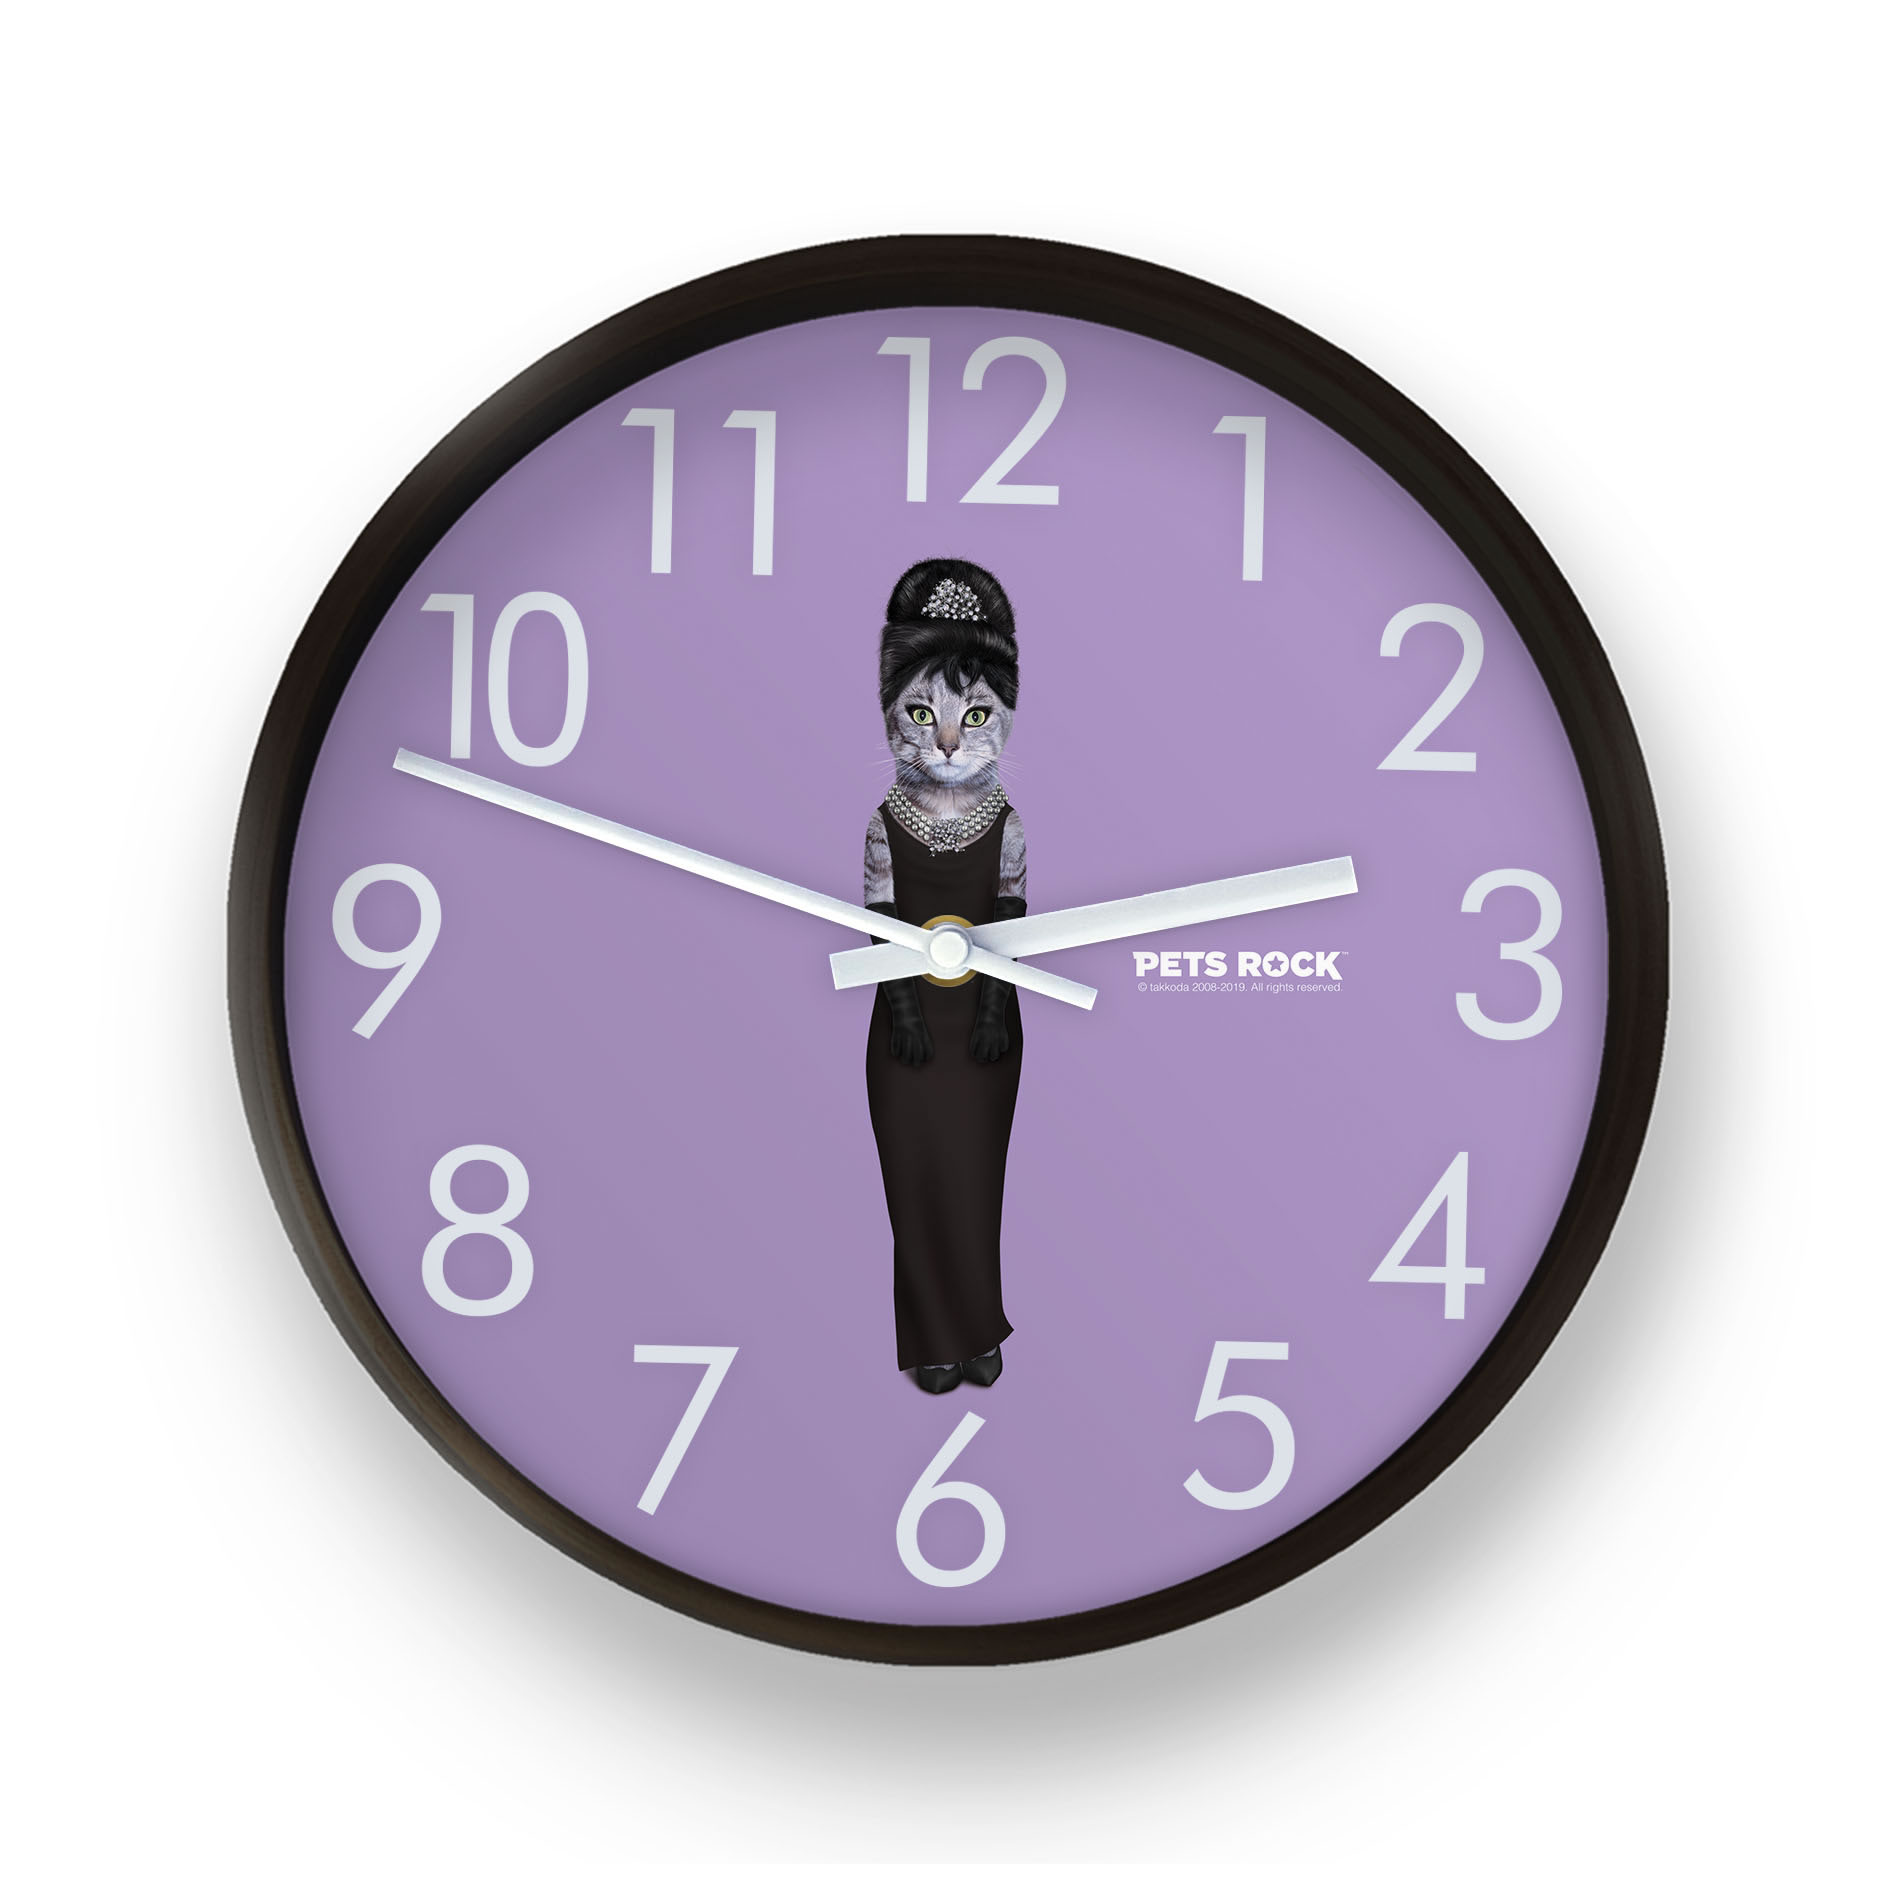 Breakfast Pets Rock Wall Clock